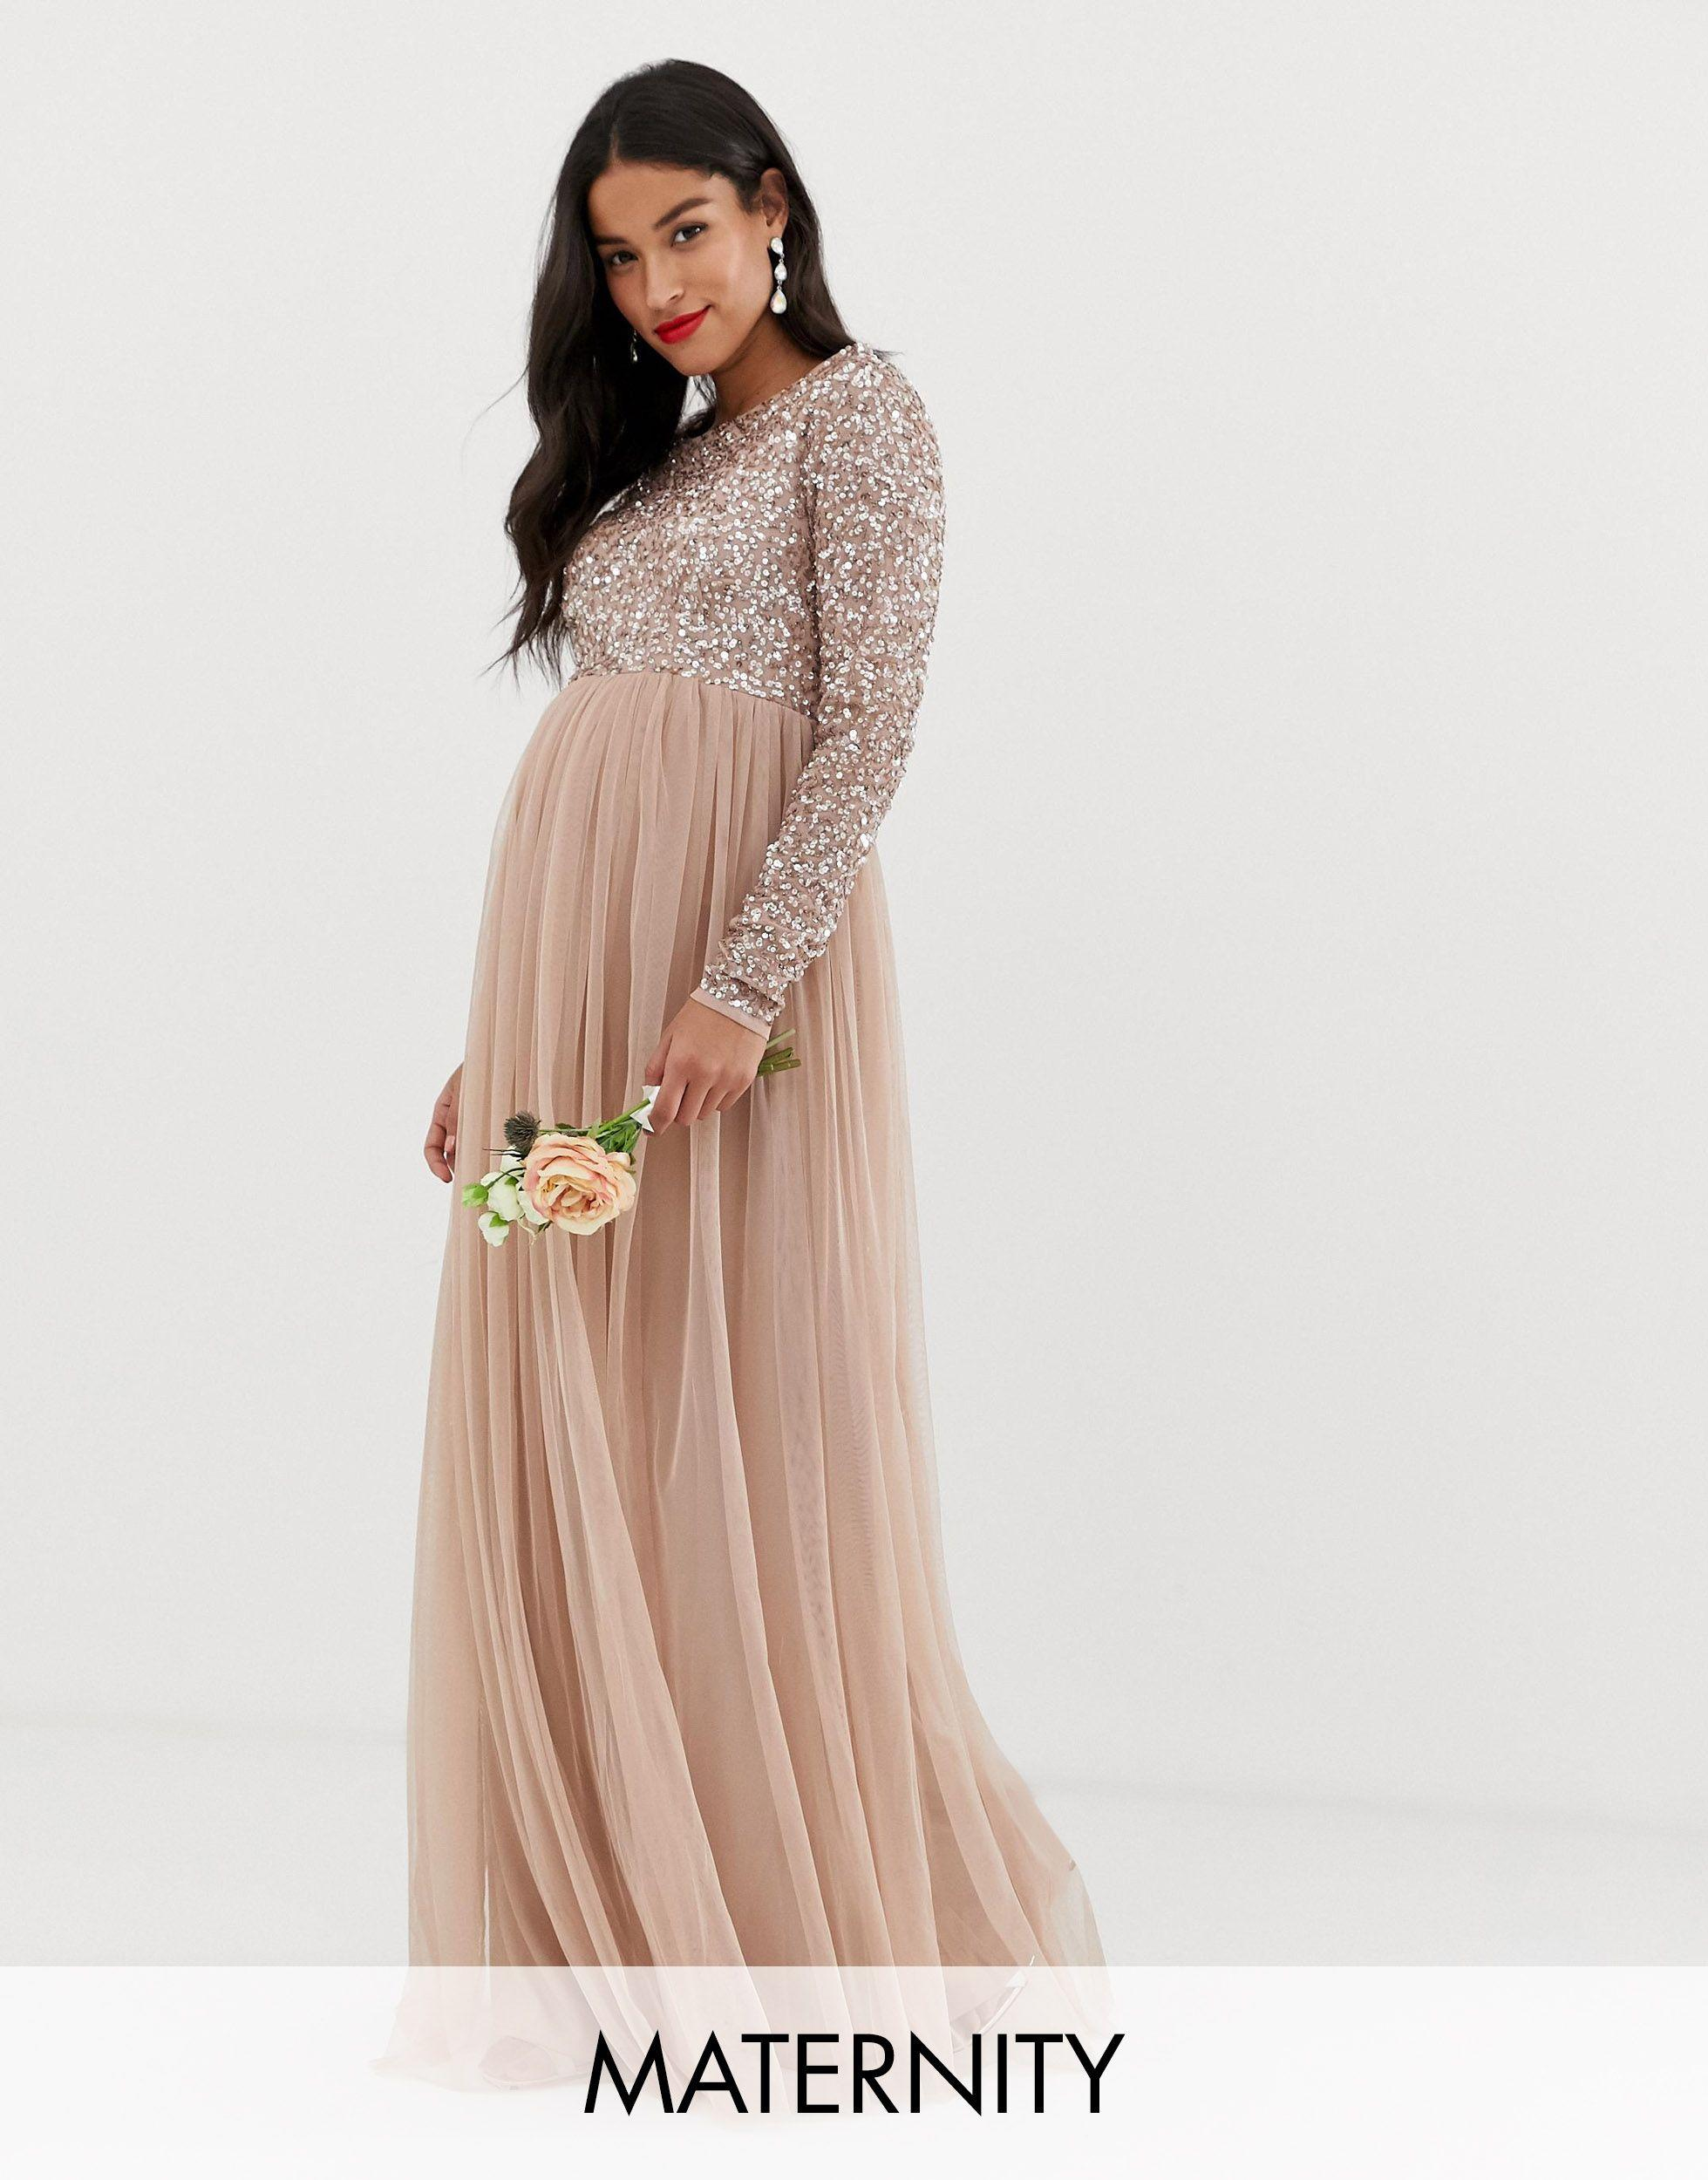 Maya Maternity Bridesmaid Long Sleeved Maxi Dress With Delicate Sequin And Tulle Skirt In Brown Lyst